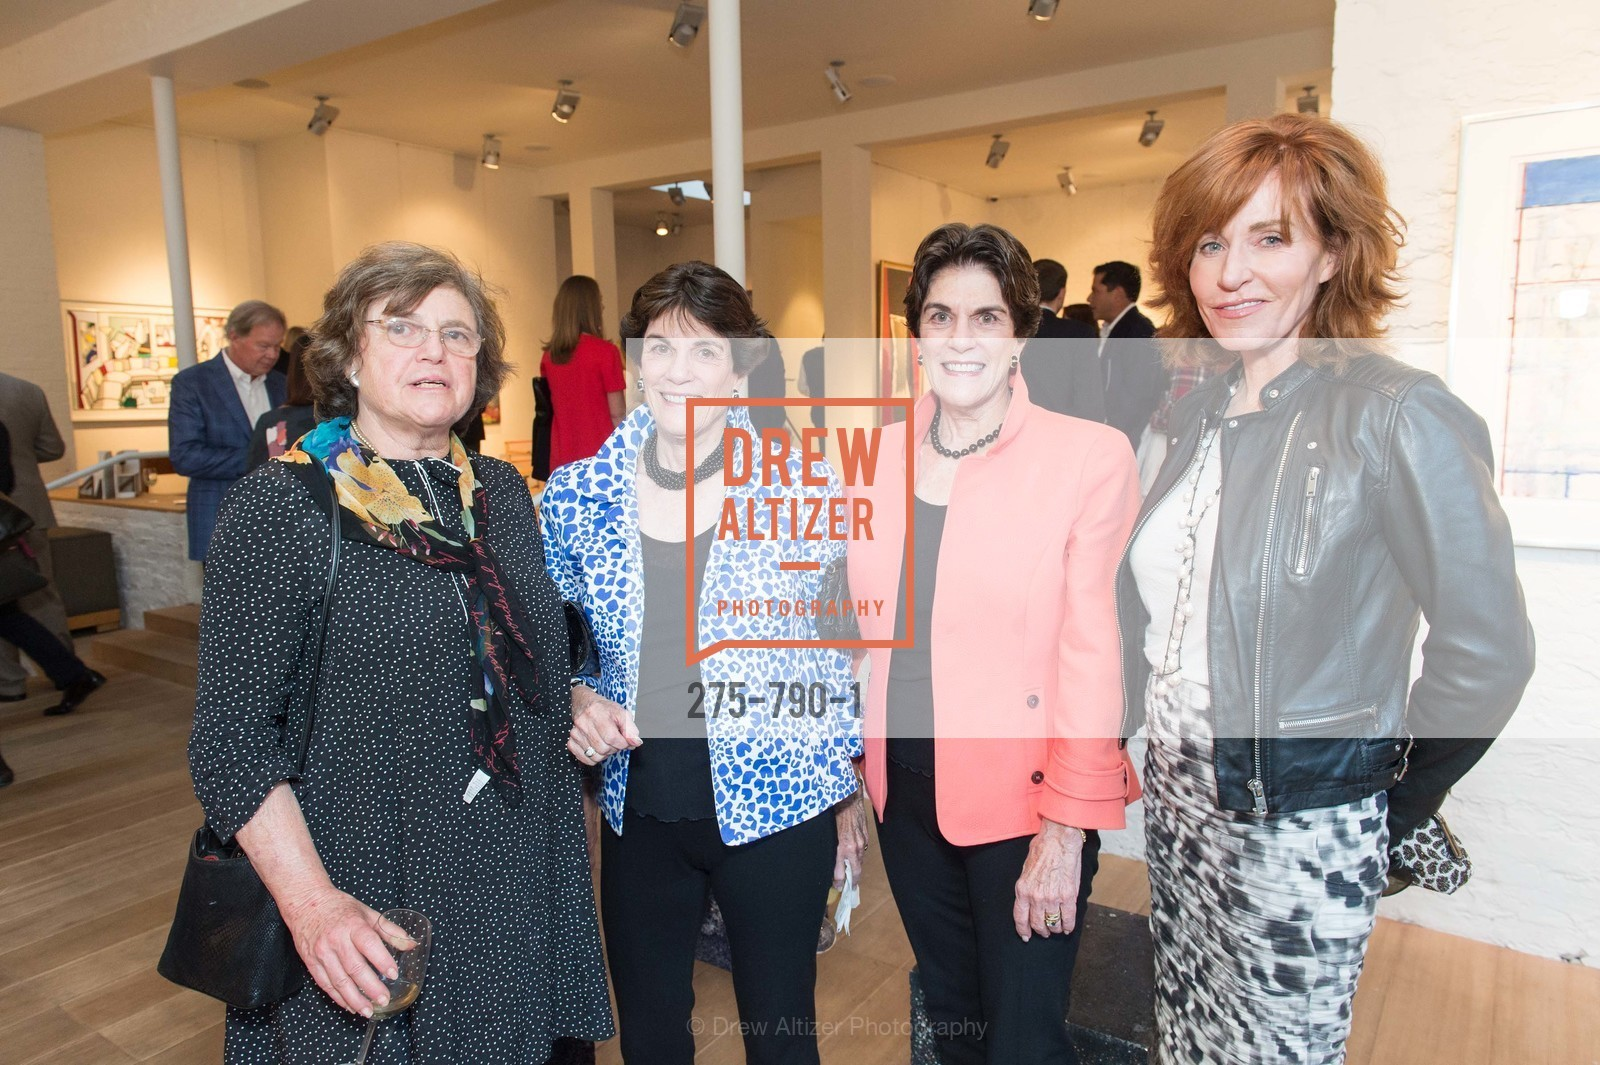 Daphne Bransten, Penny Eisle, Francie Steimer, Brenda Jewett, Post War and Contemporary Preview at HEDGE GALLERY, US, April 16th, 2015,Drew Altizer, Drew Altizer Photography, full-service agency, private events, San Francisco photographer, photographer california